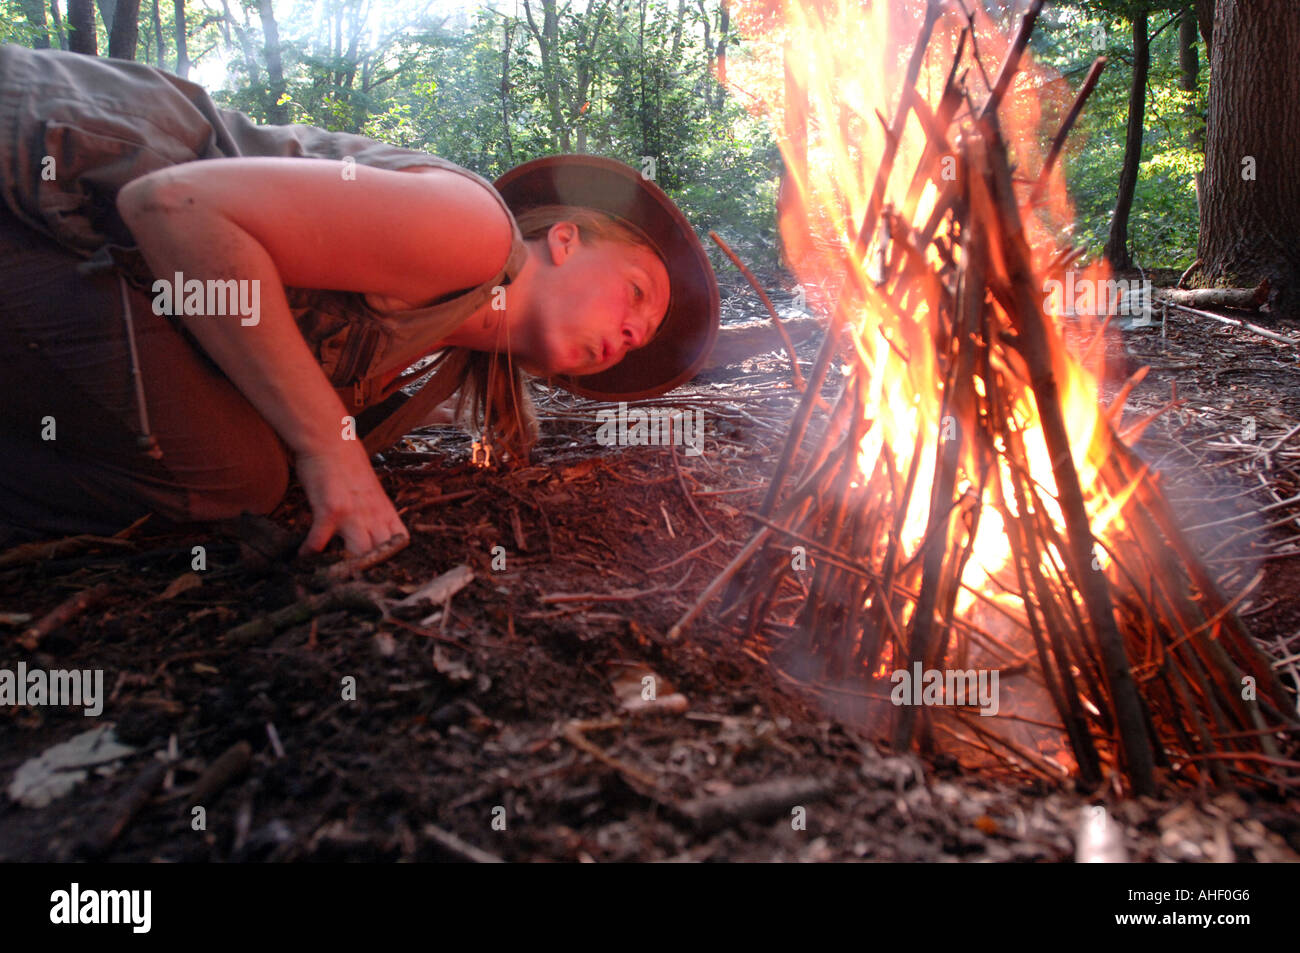 Woman wilderness expert demonstrates how to light a camp fire. - Stock Image